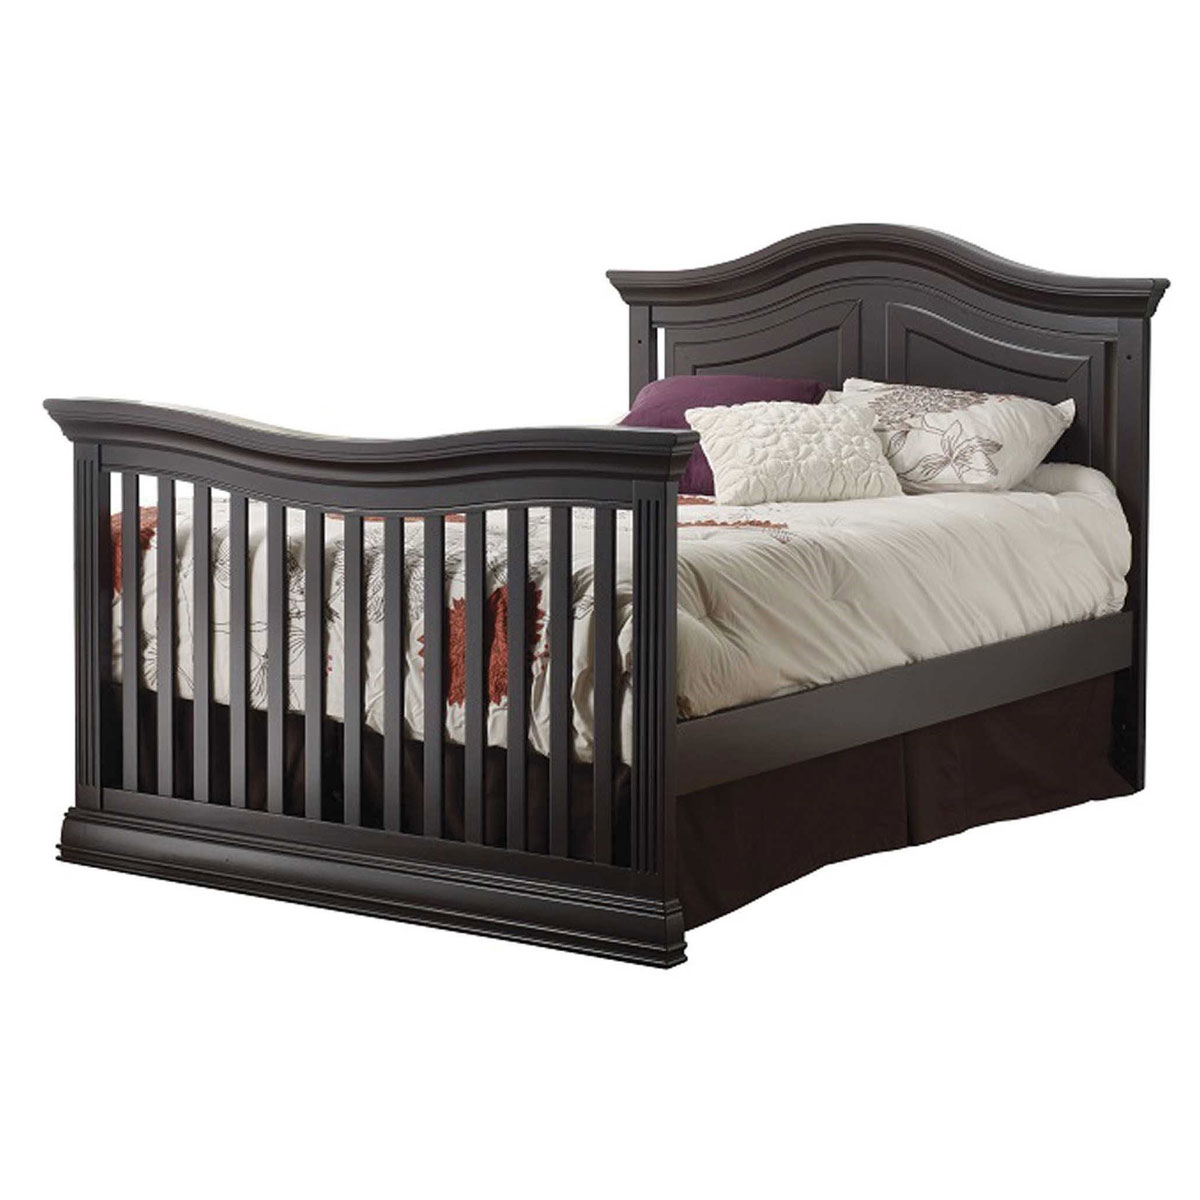 Convertible Crib Bed Rails Toddler Bed With Convertible